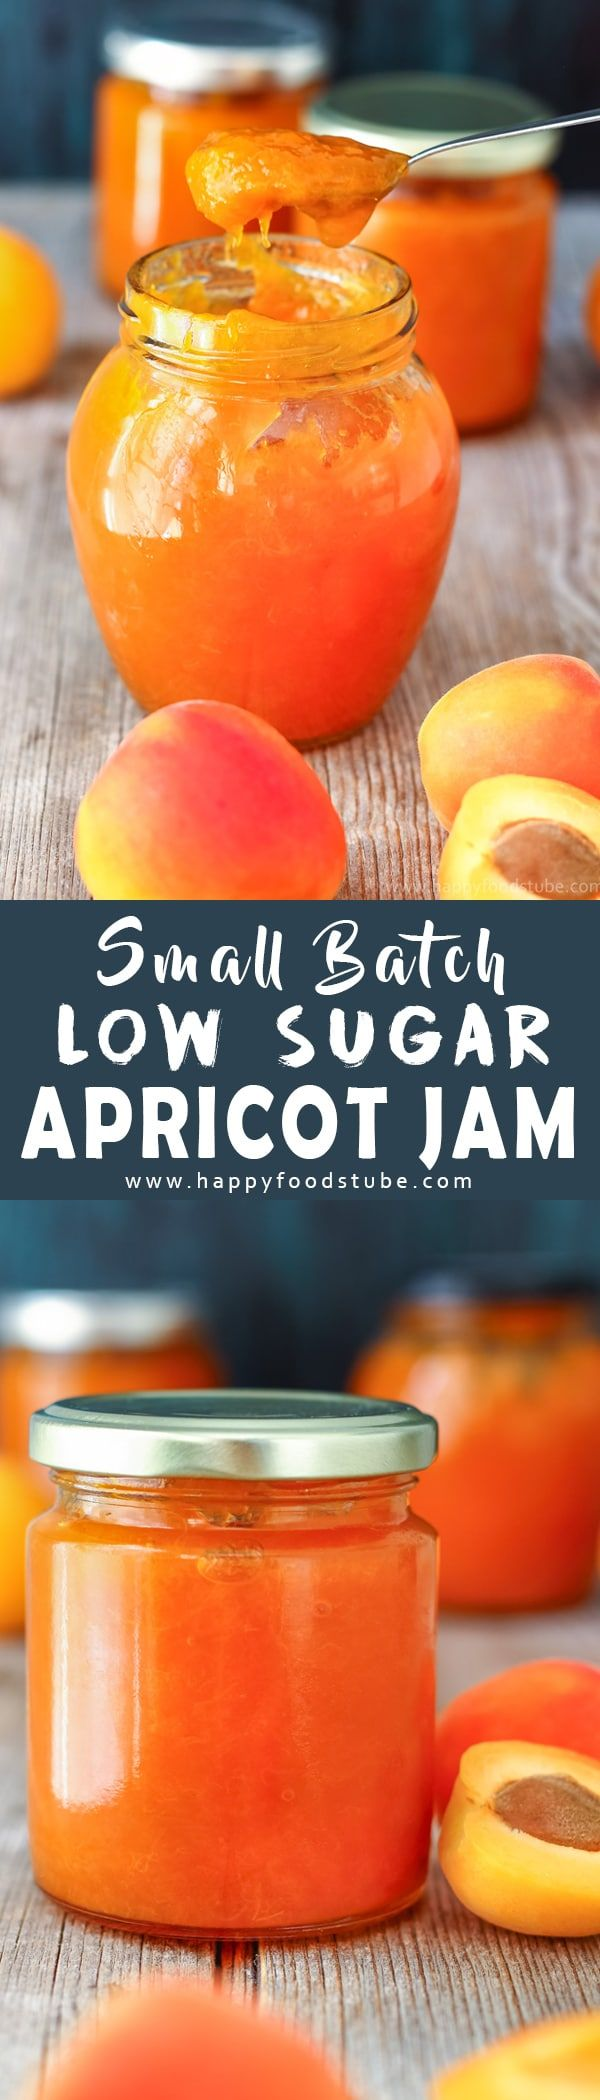 Small Batch Low Sugar Apricot Jam